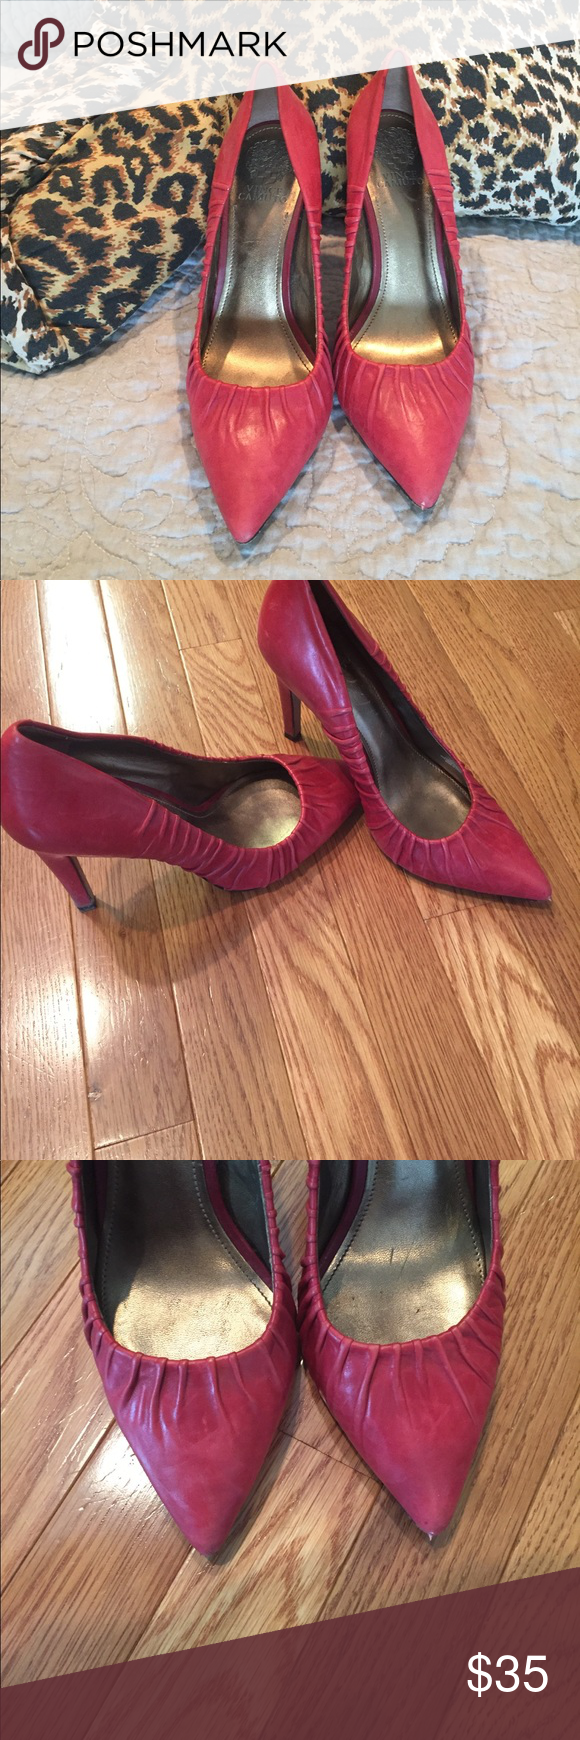 Gorgeous red pumps These pumps are amazing! I don't wear them nearly enough. They are in great shape! Vince Camuto Shoes Heels